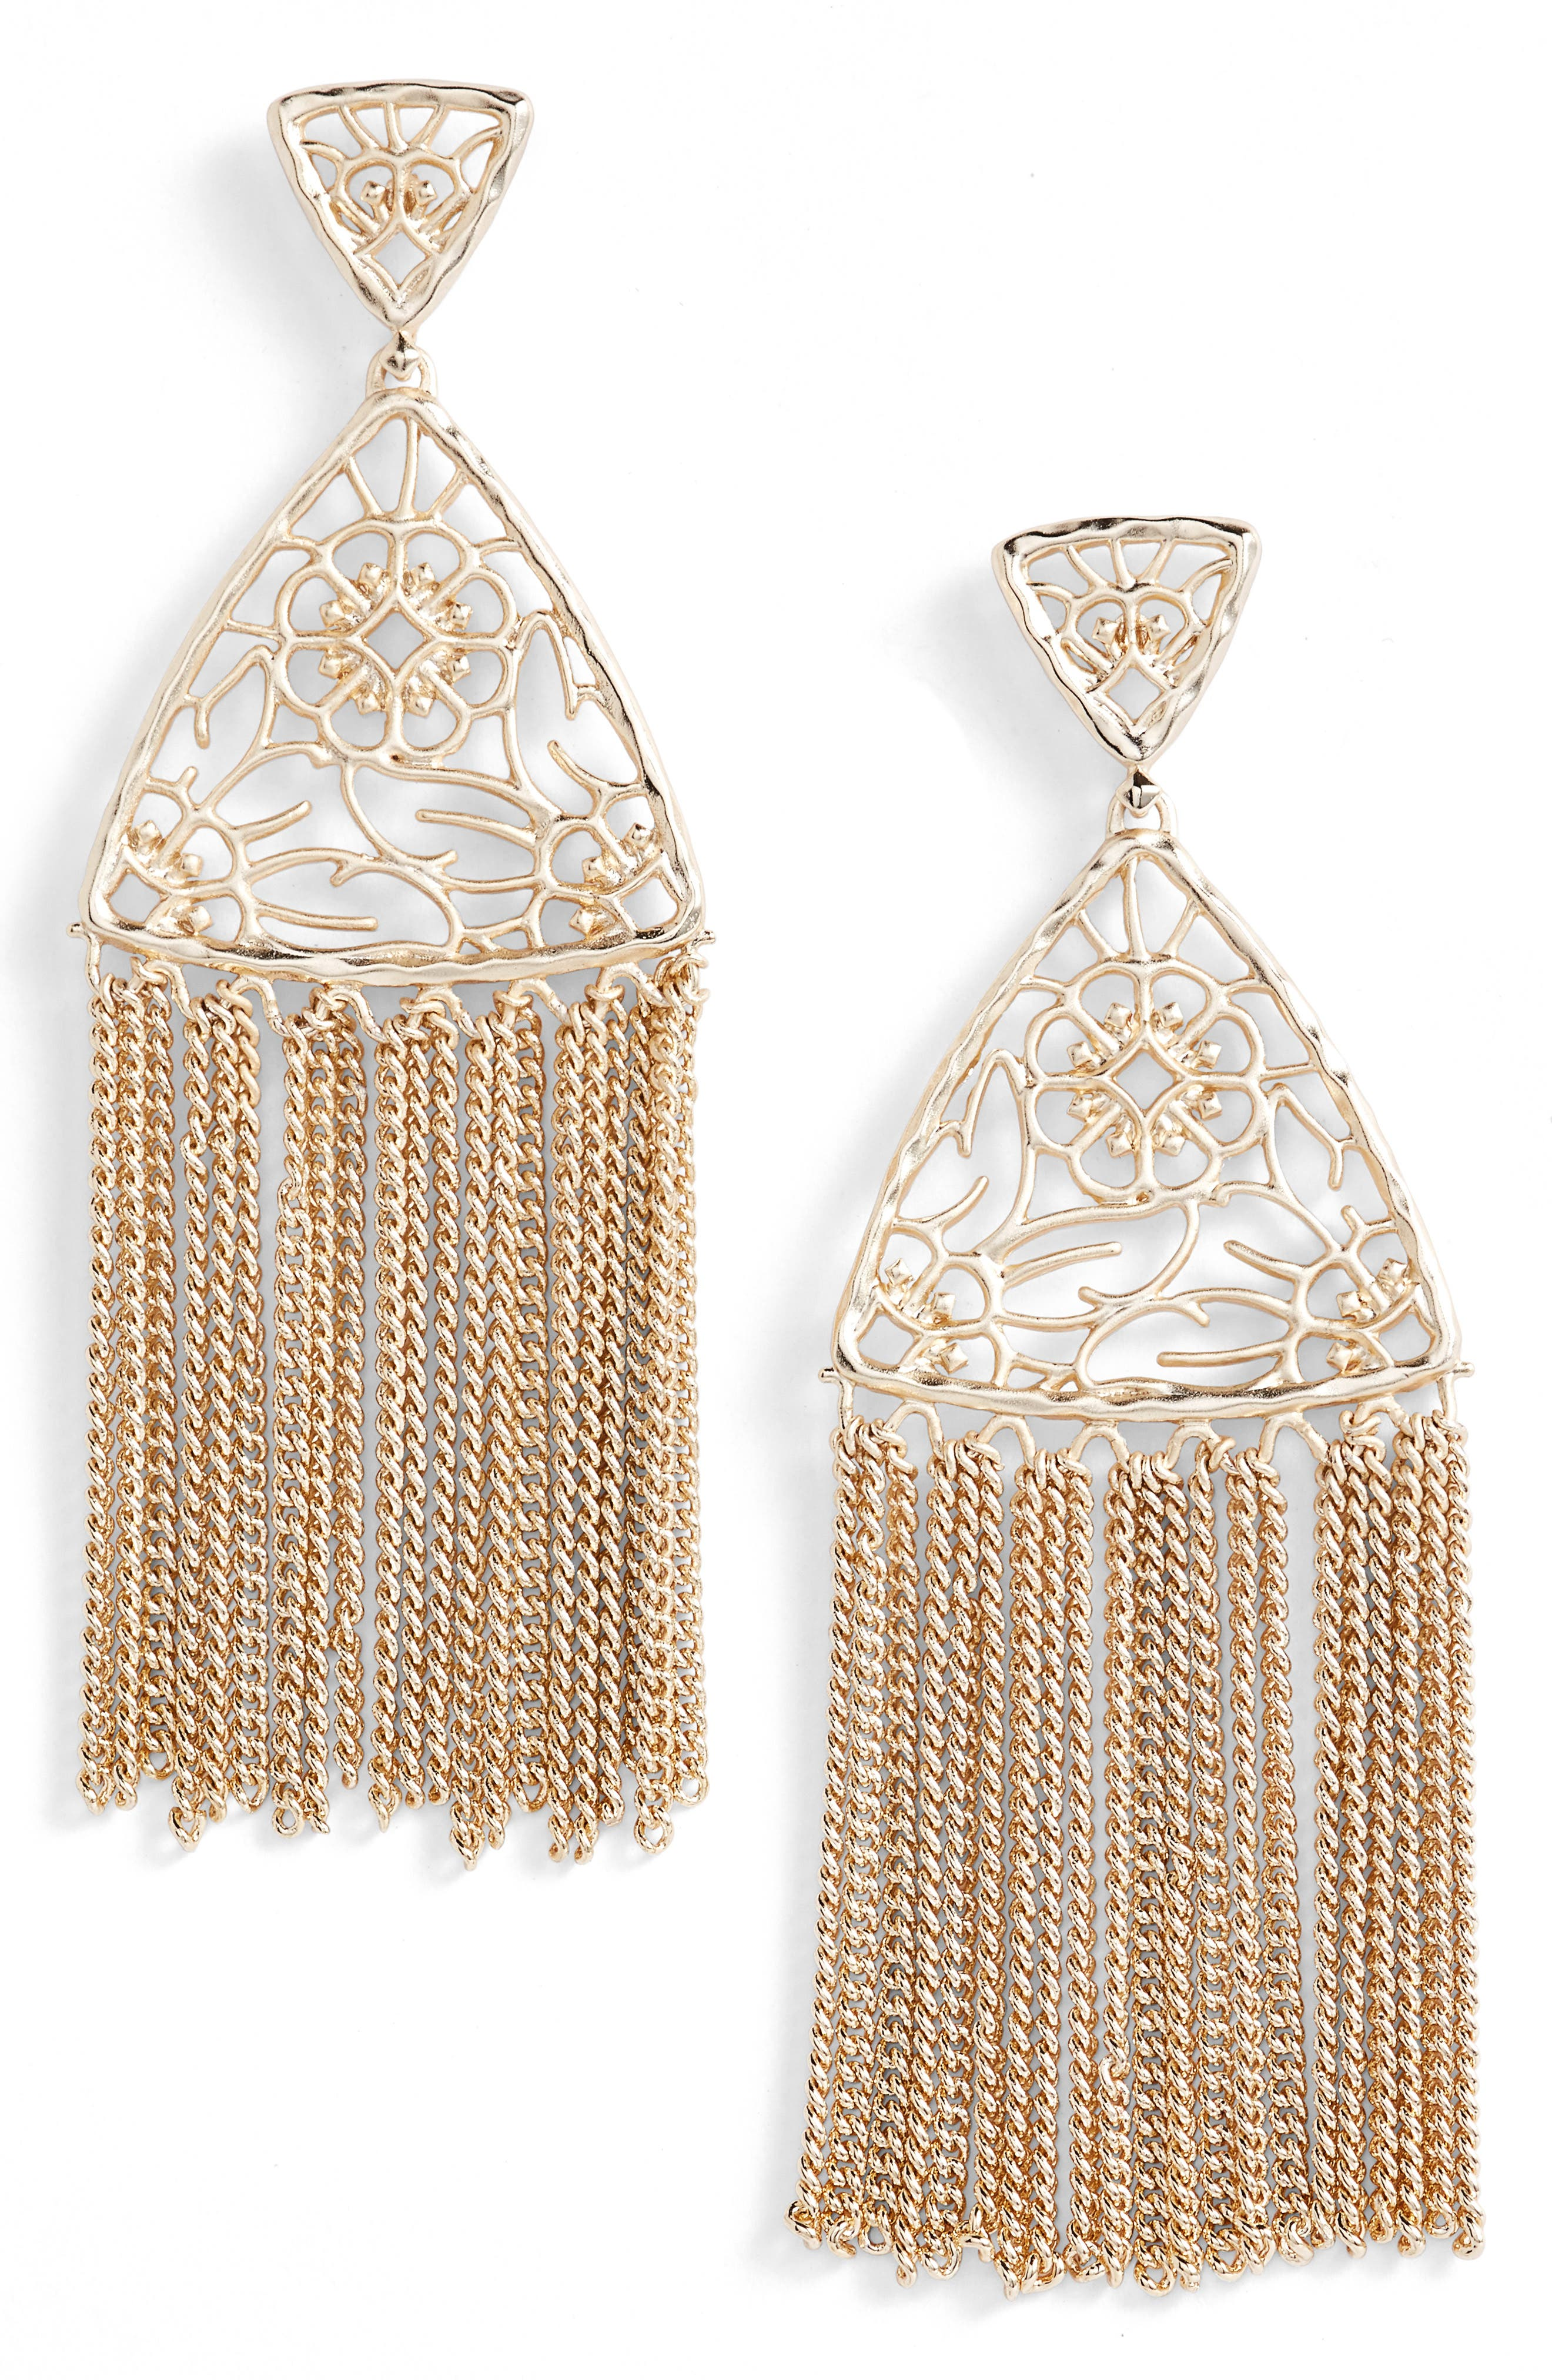 Kendra Scott Ana Drop Earrings